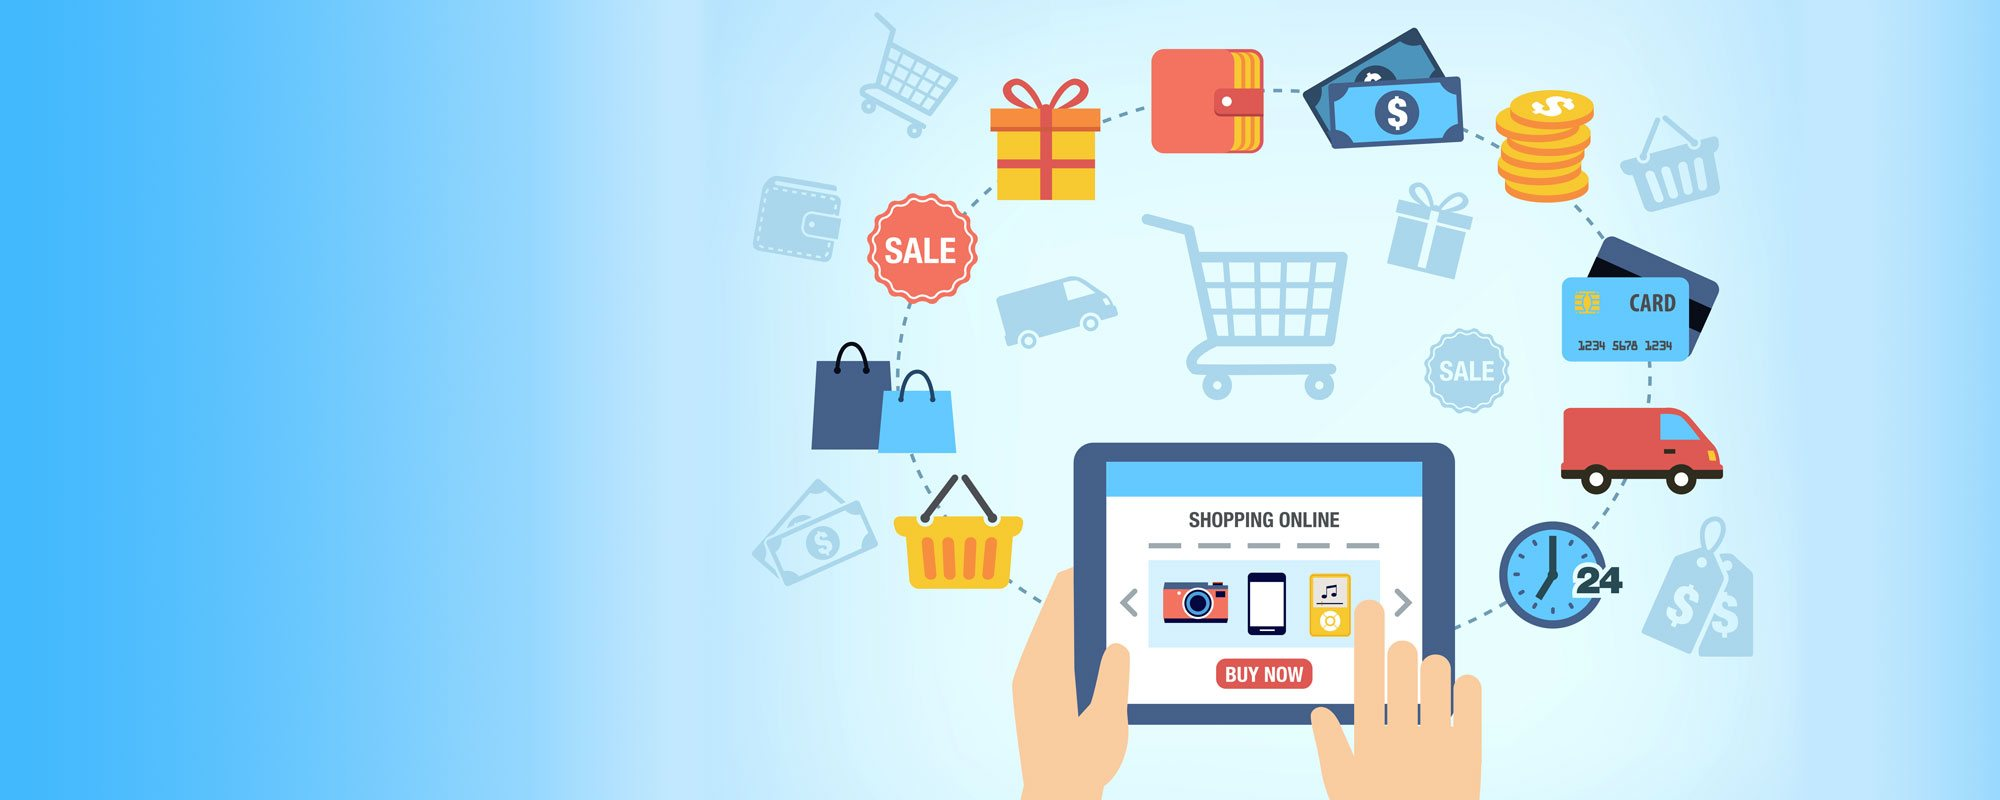 slide-bg-e-commerce